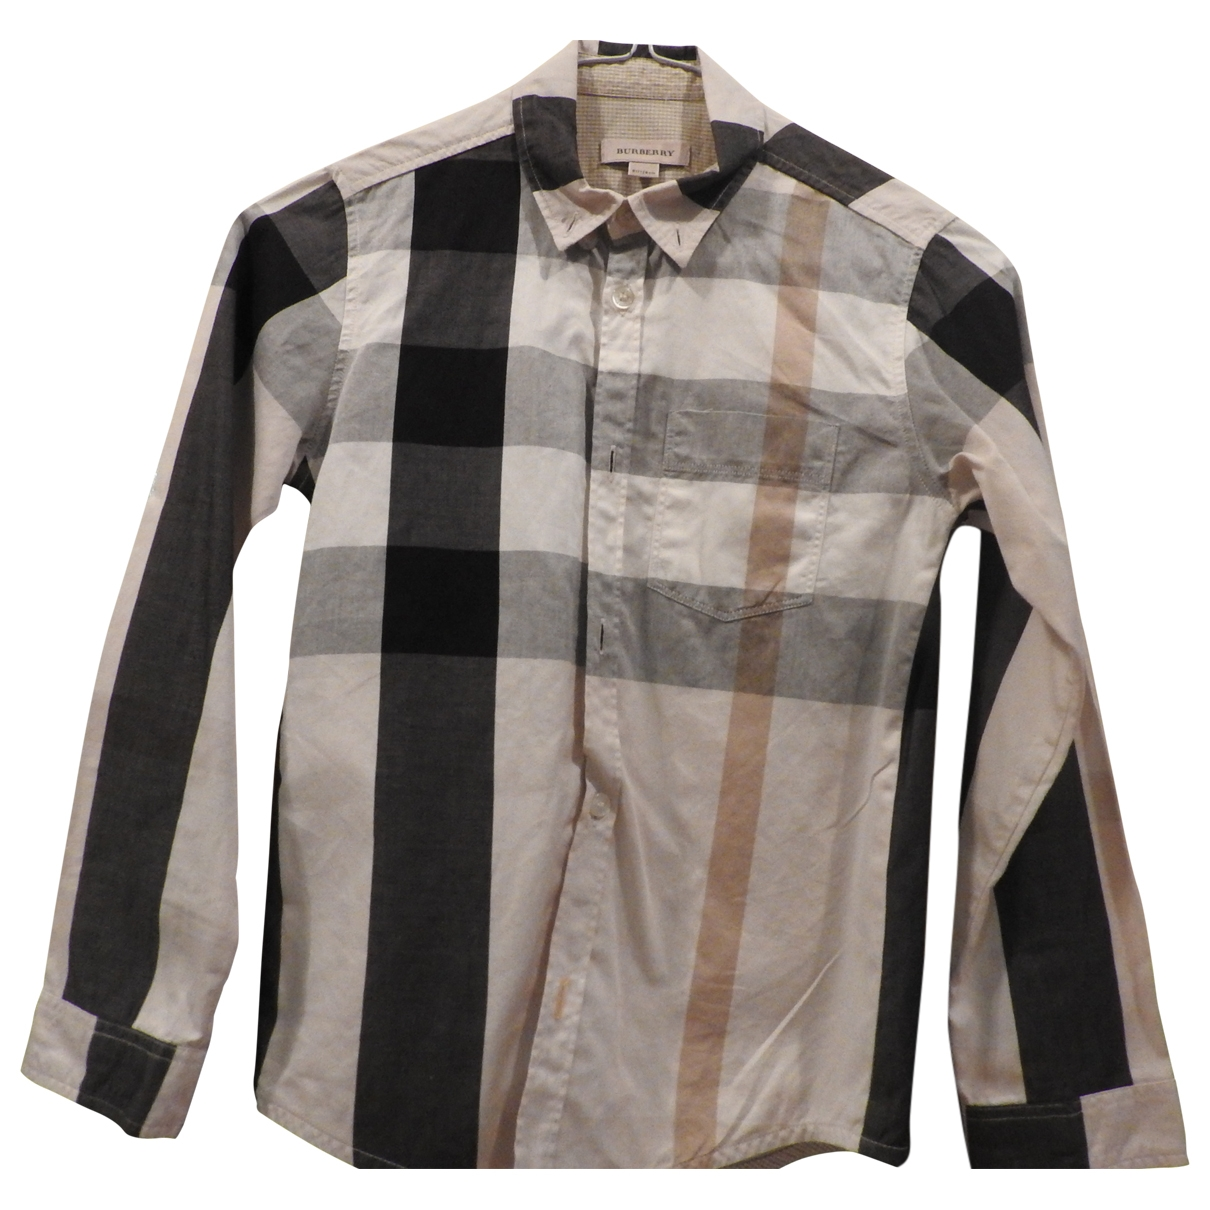 Burberry \N White Cotton  top for Kids 8 years - until 50 inches UK